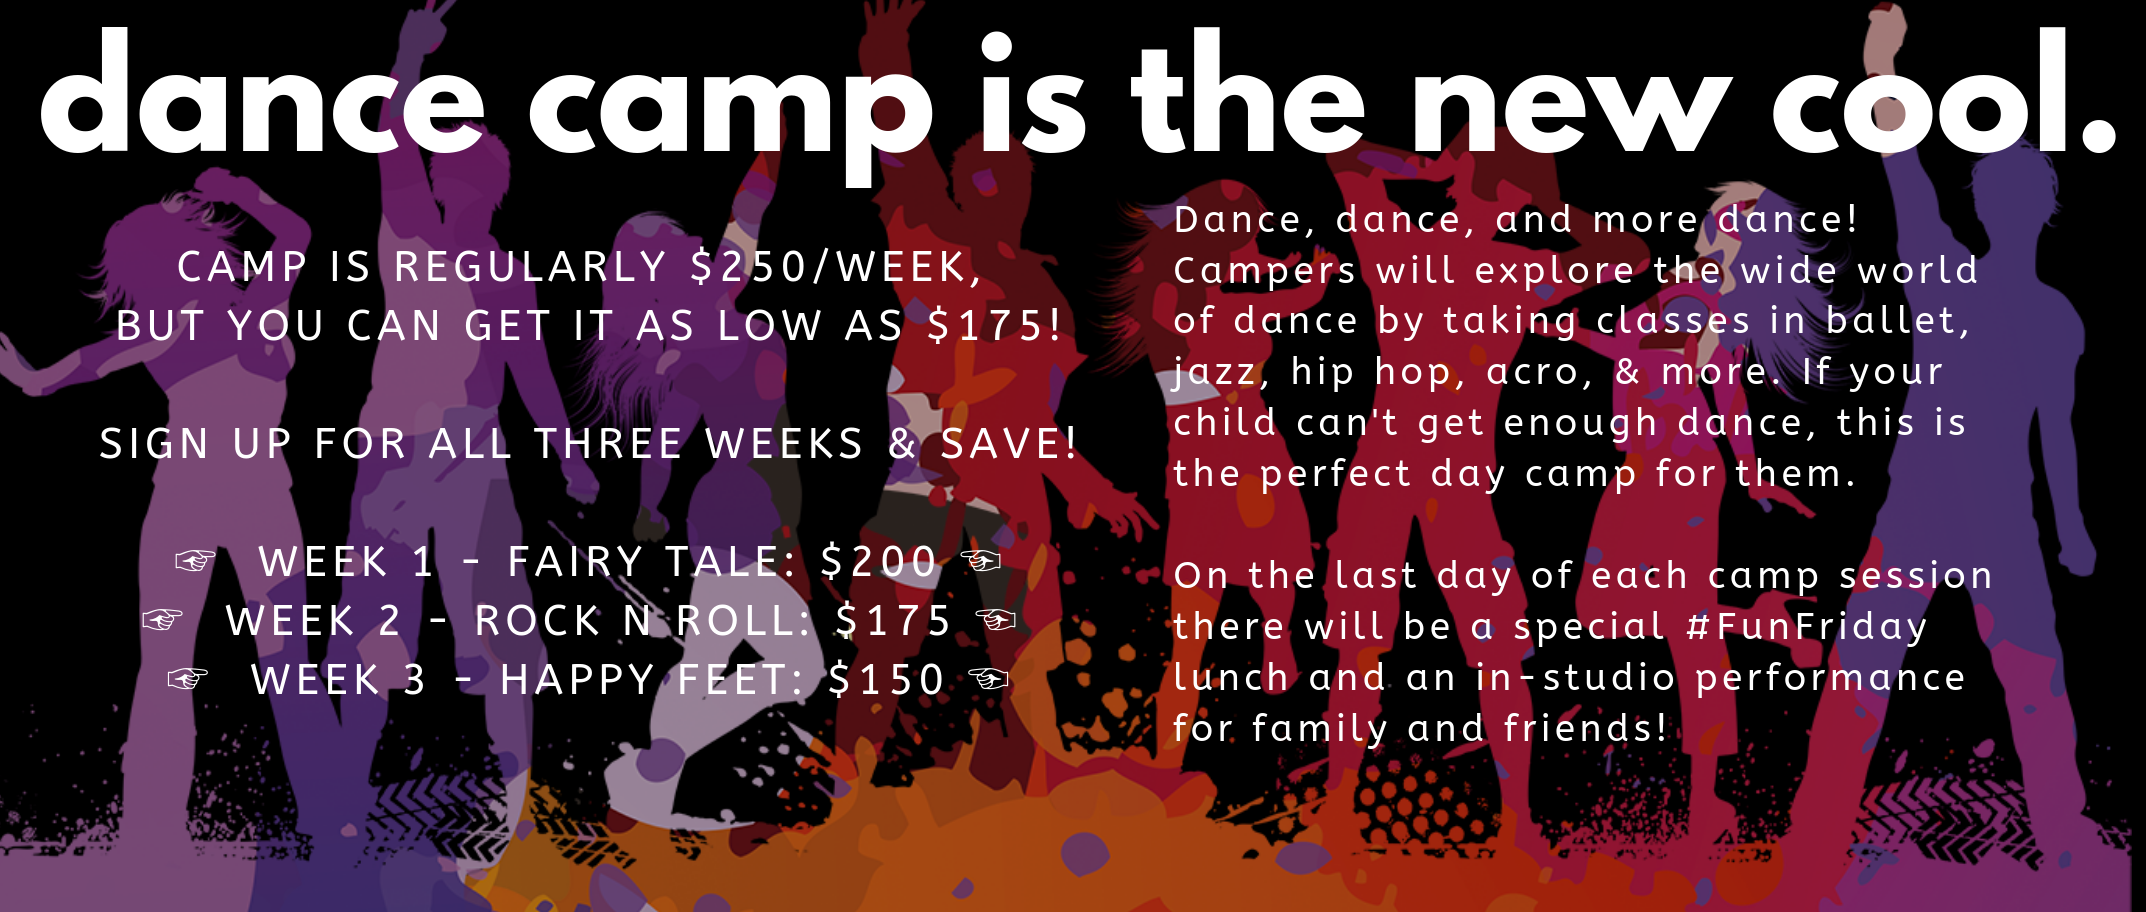 dance camp is the new cool